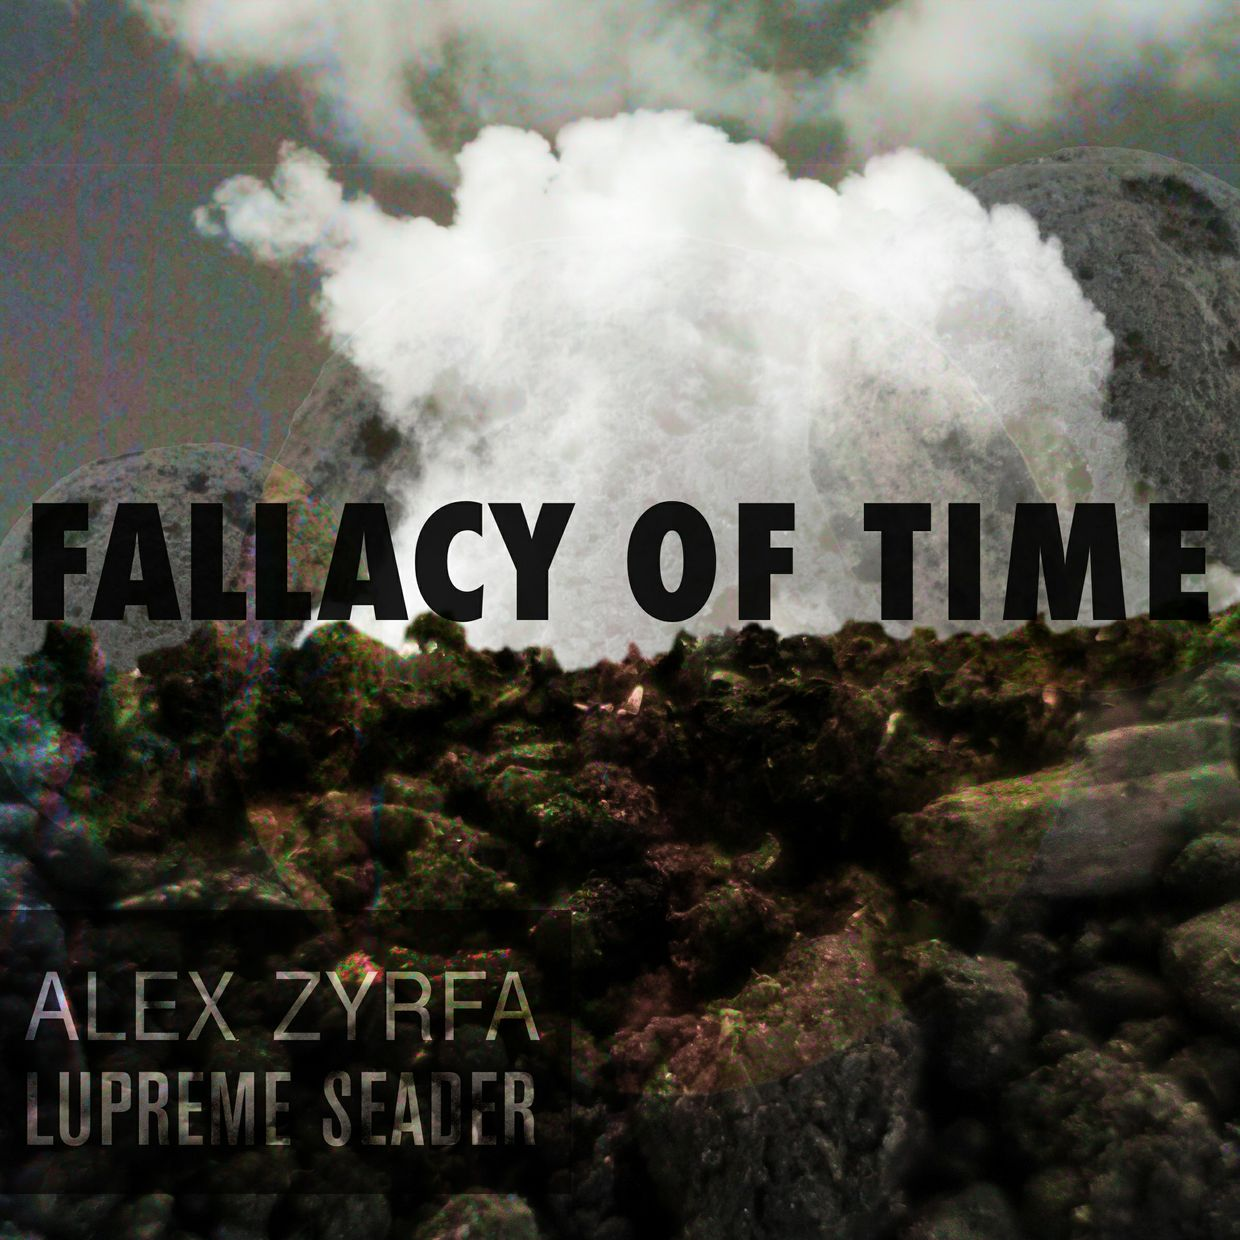 Alex Zyrfa & Lupreme Seader - Fallacy of Time